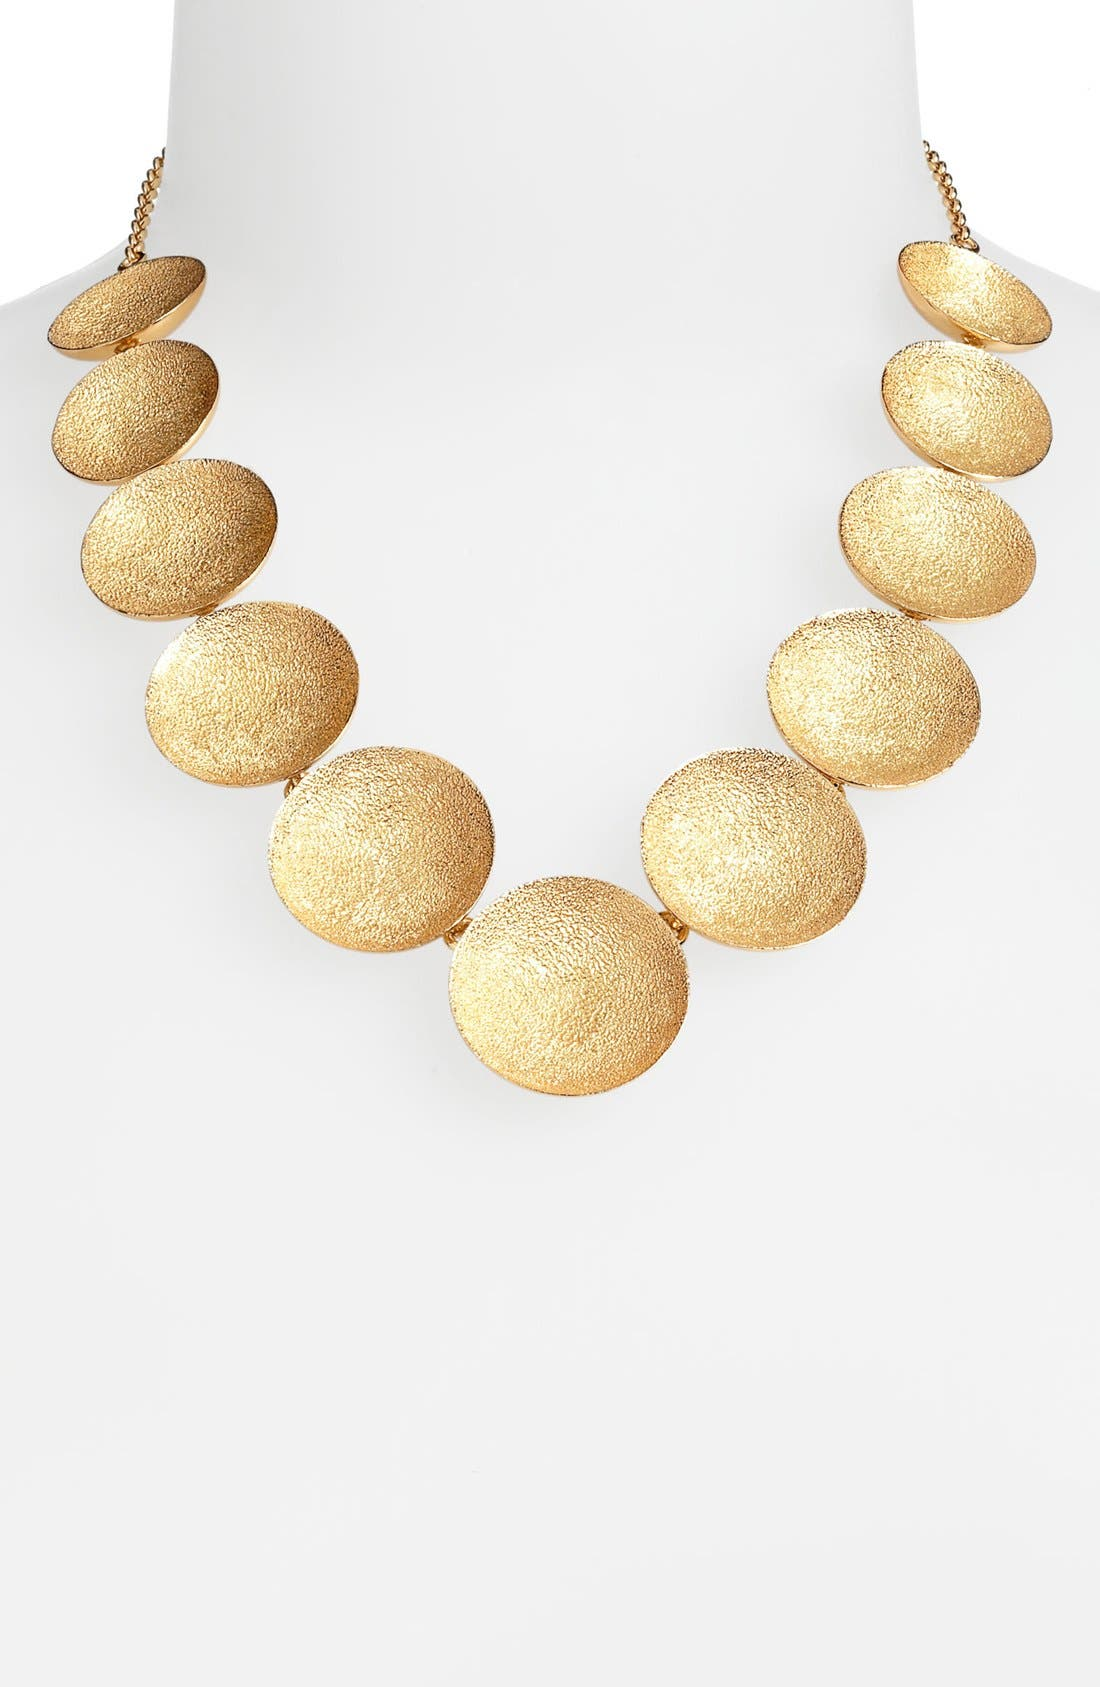 Alternate Image 1 Selected - Melinda Maria 'Bethenny' Frontal Necklace (Nordstrom Exclusive)